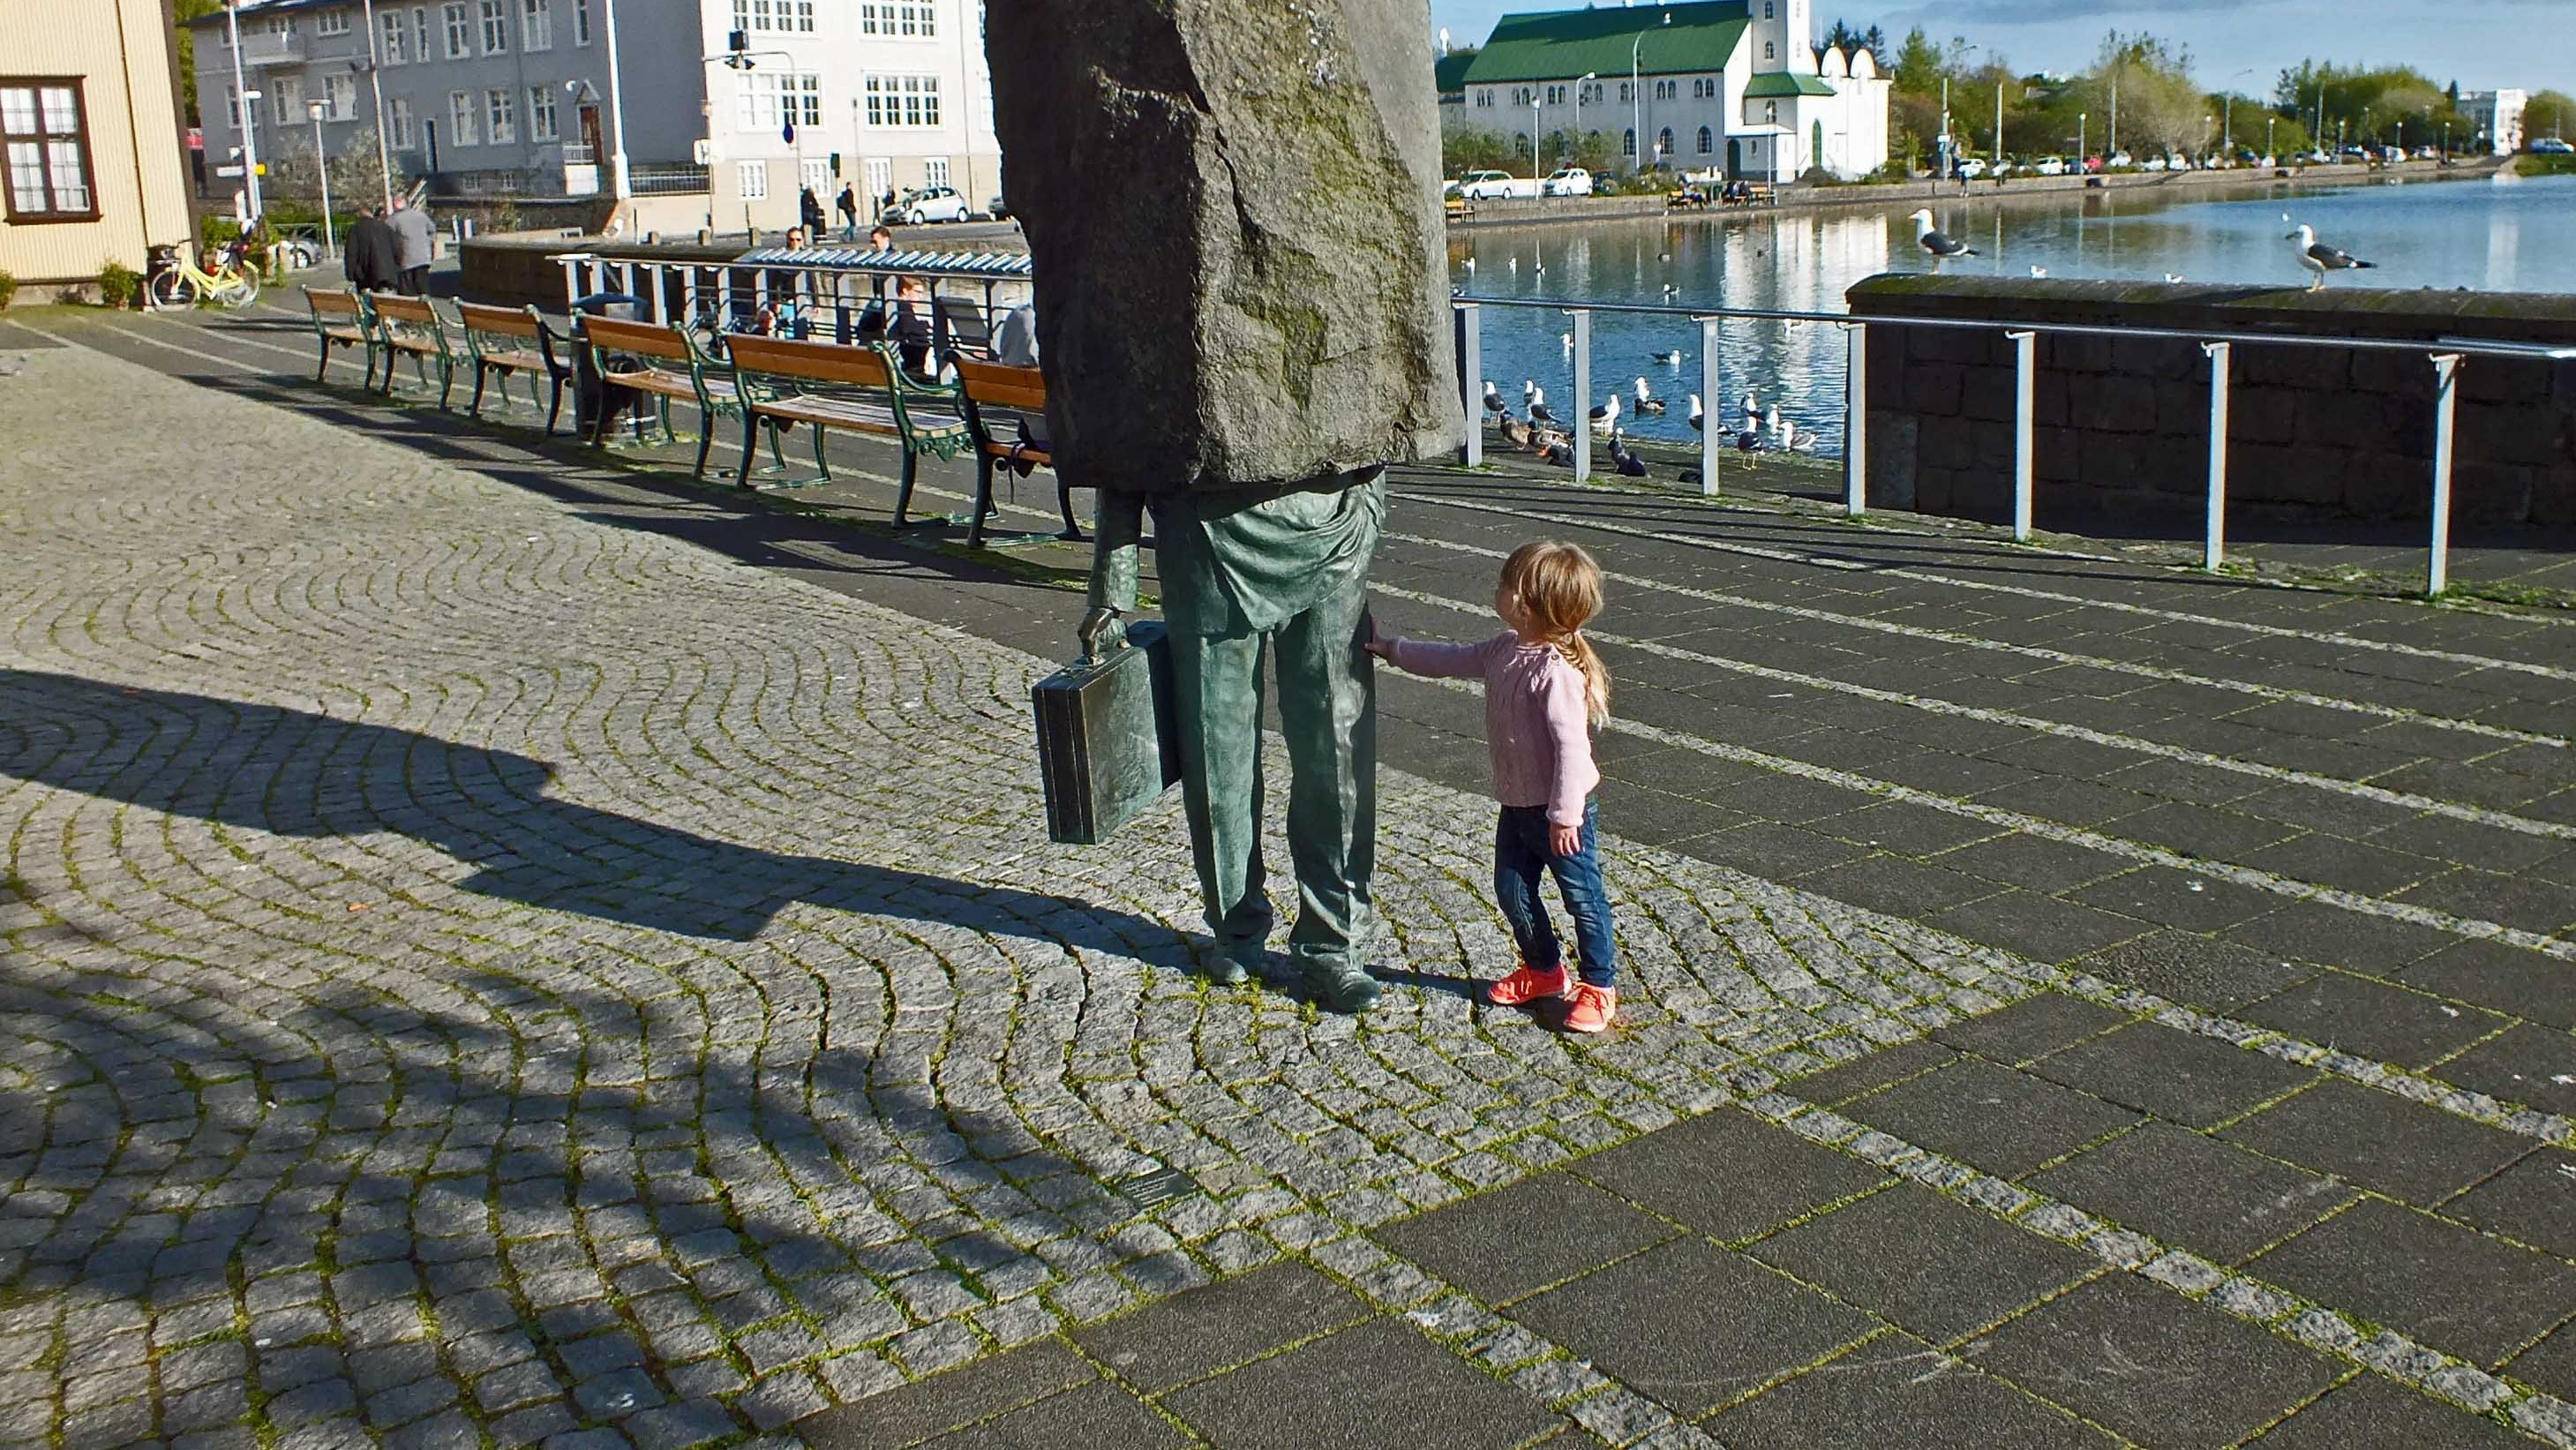 The guardian of welfare during Iceland's crisis